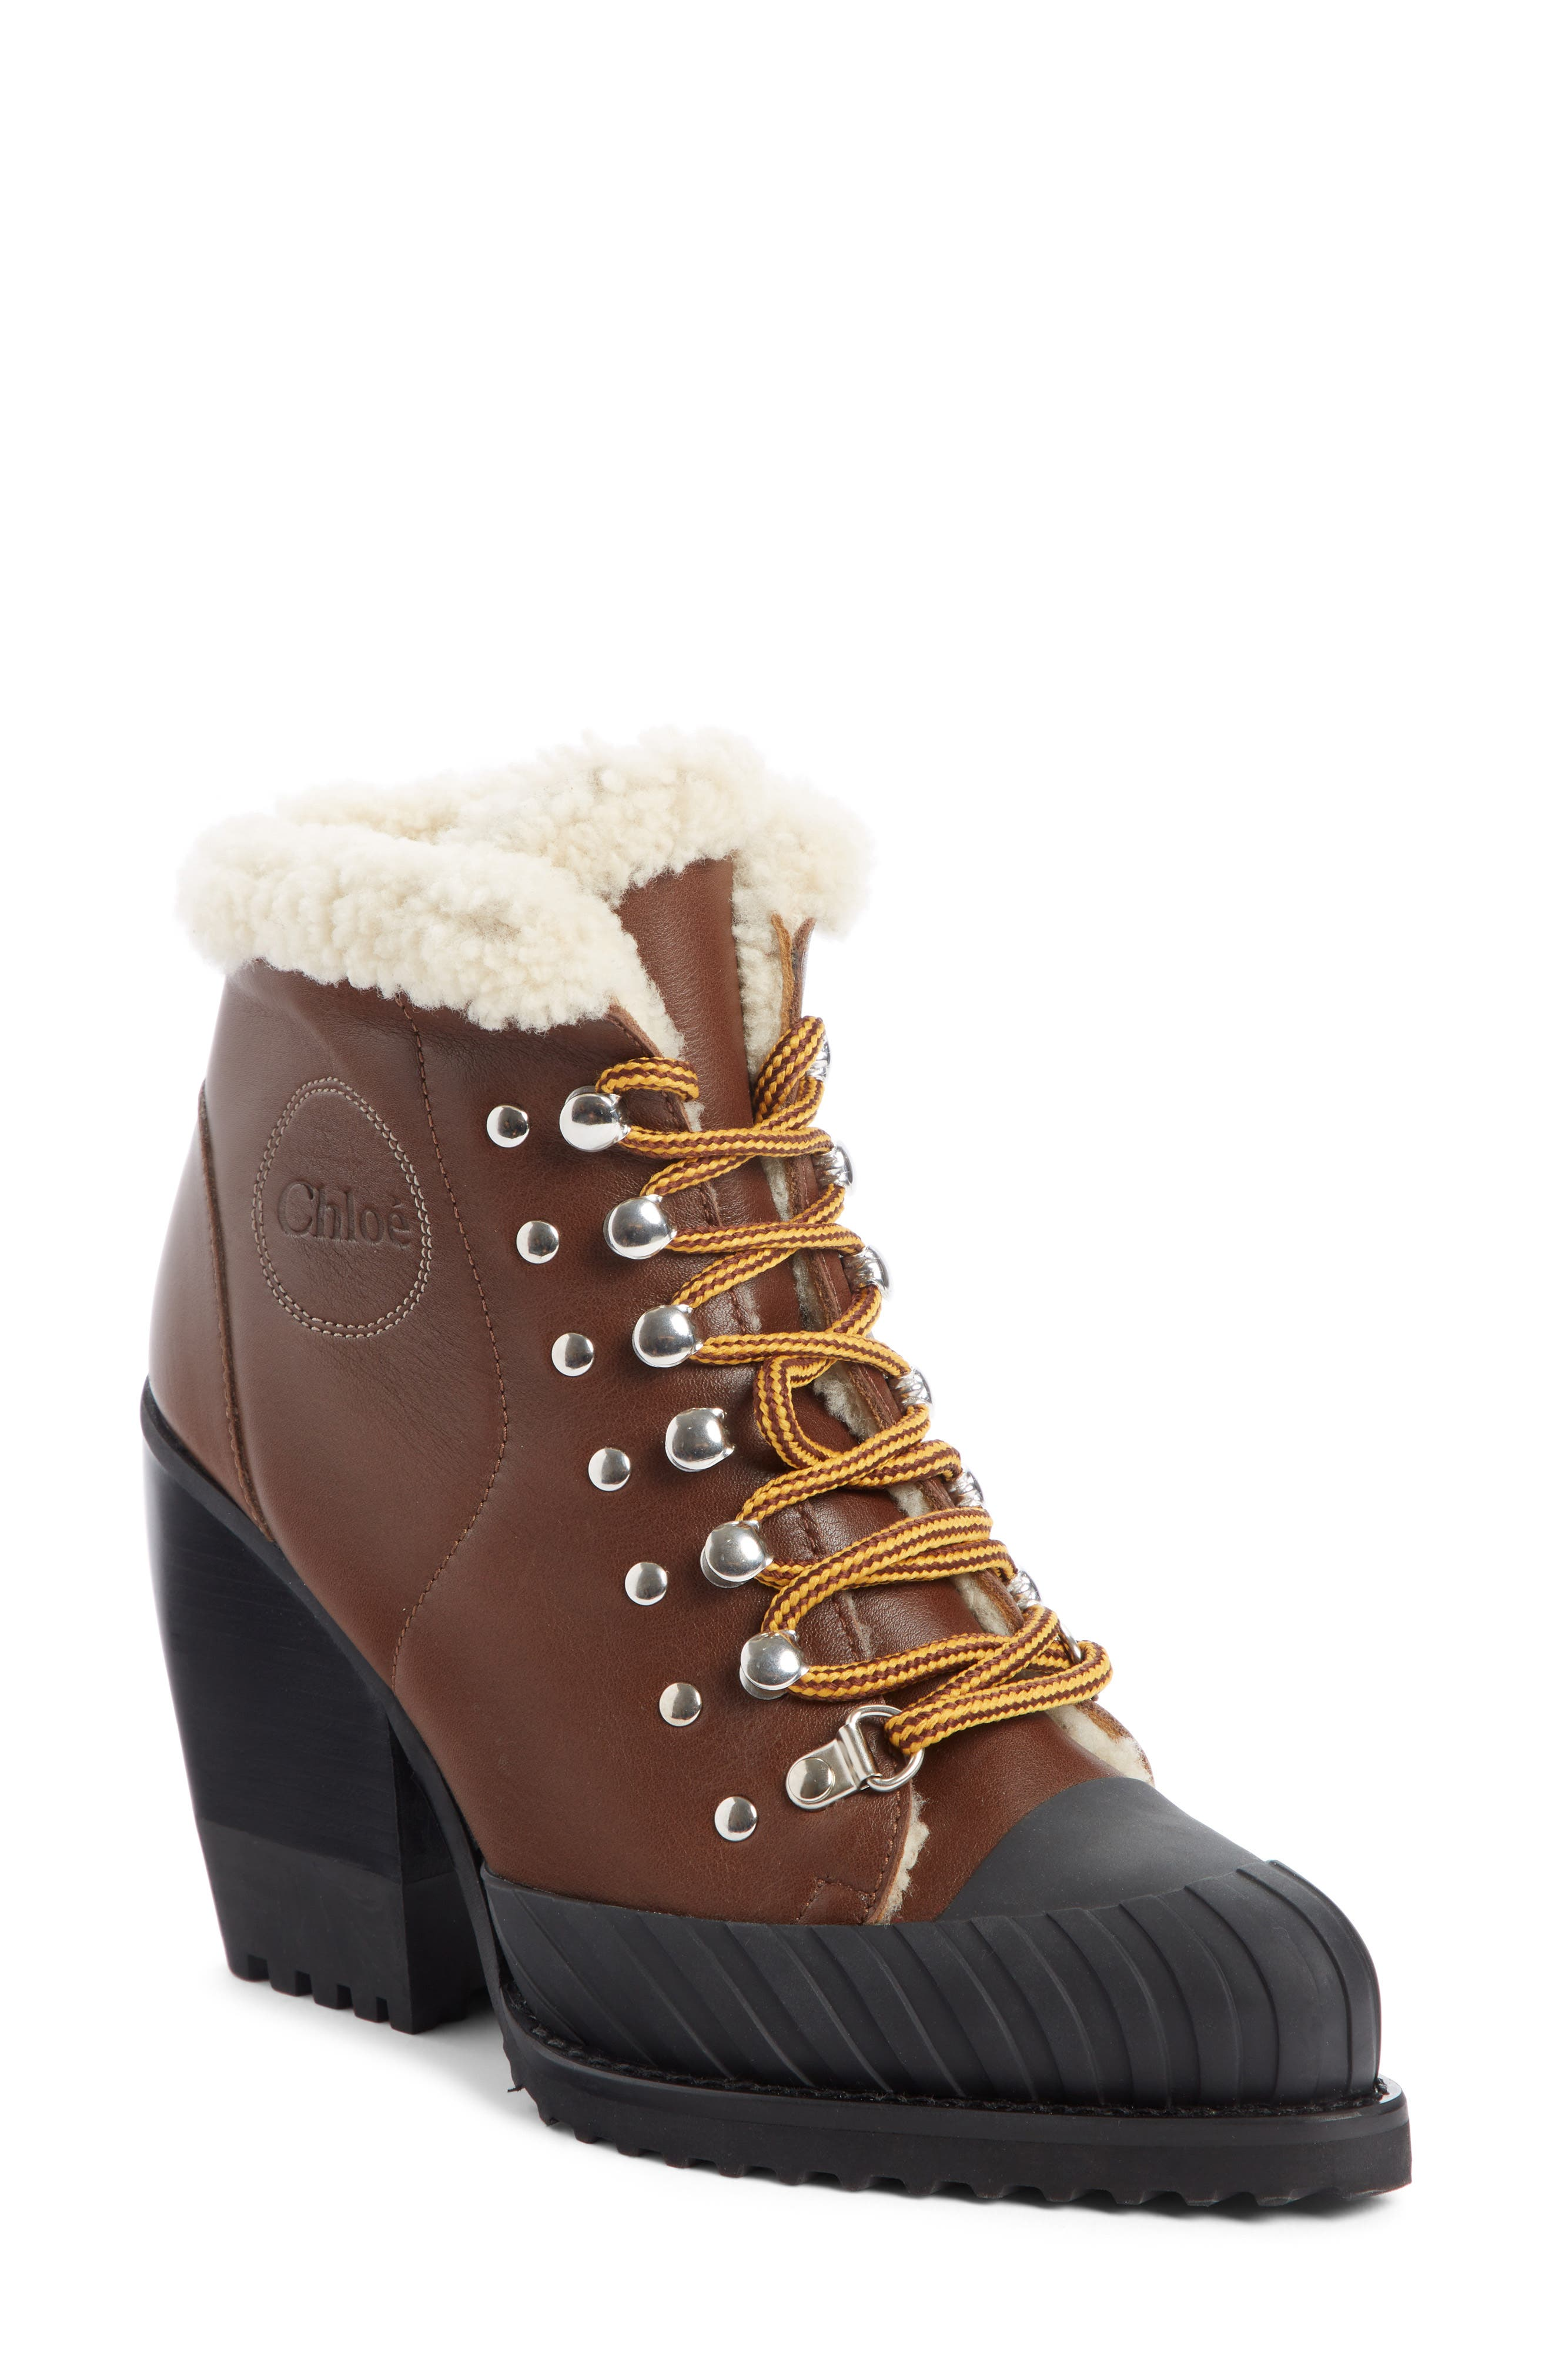 Rylee Genuine Shearling Lined Hiking Boot,                             Main thumbnail 1, color,                             TRUE BROWN LEATHER